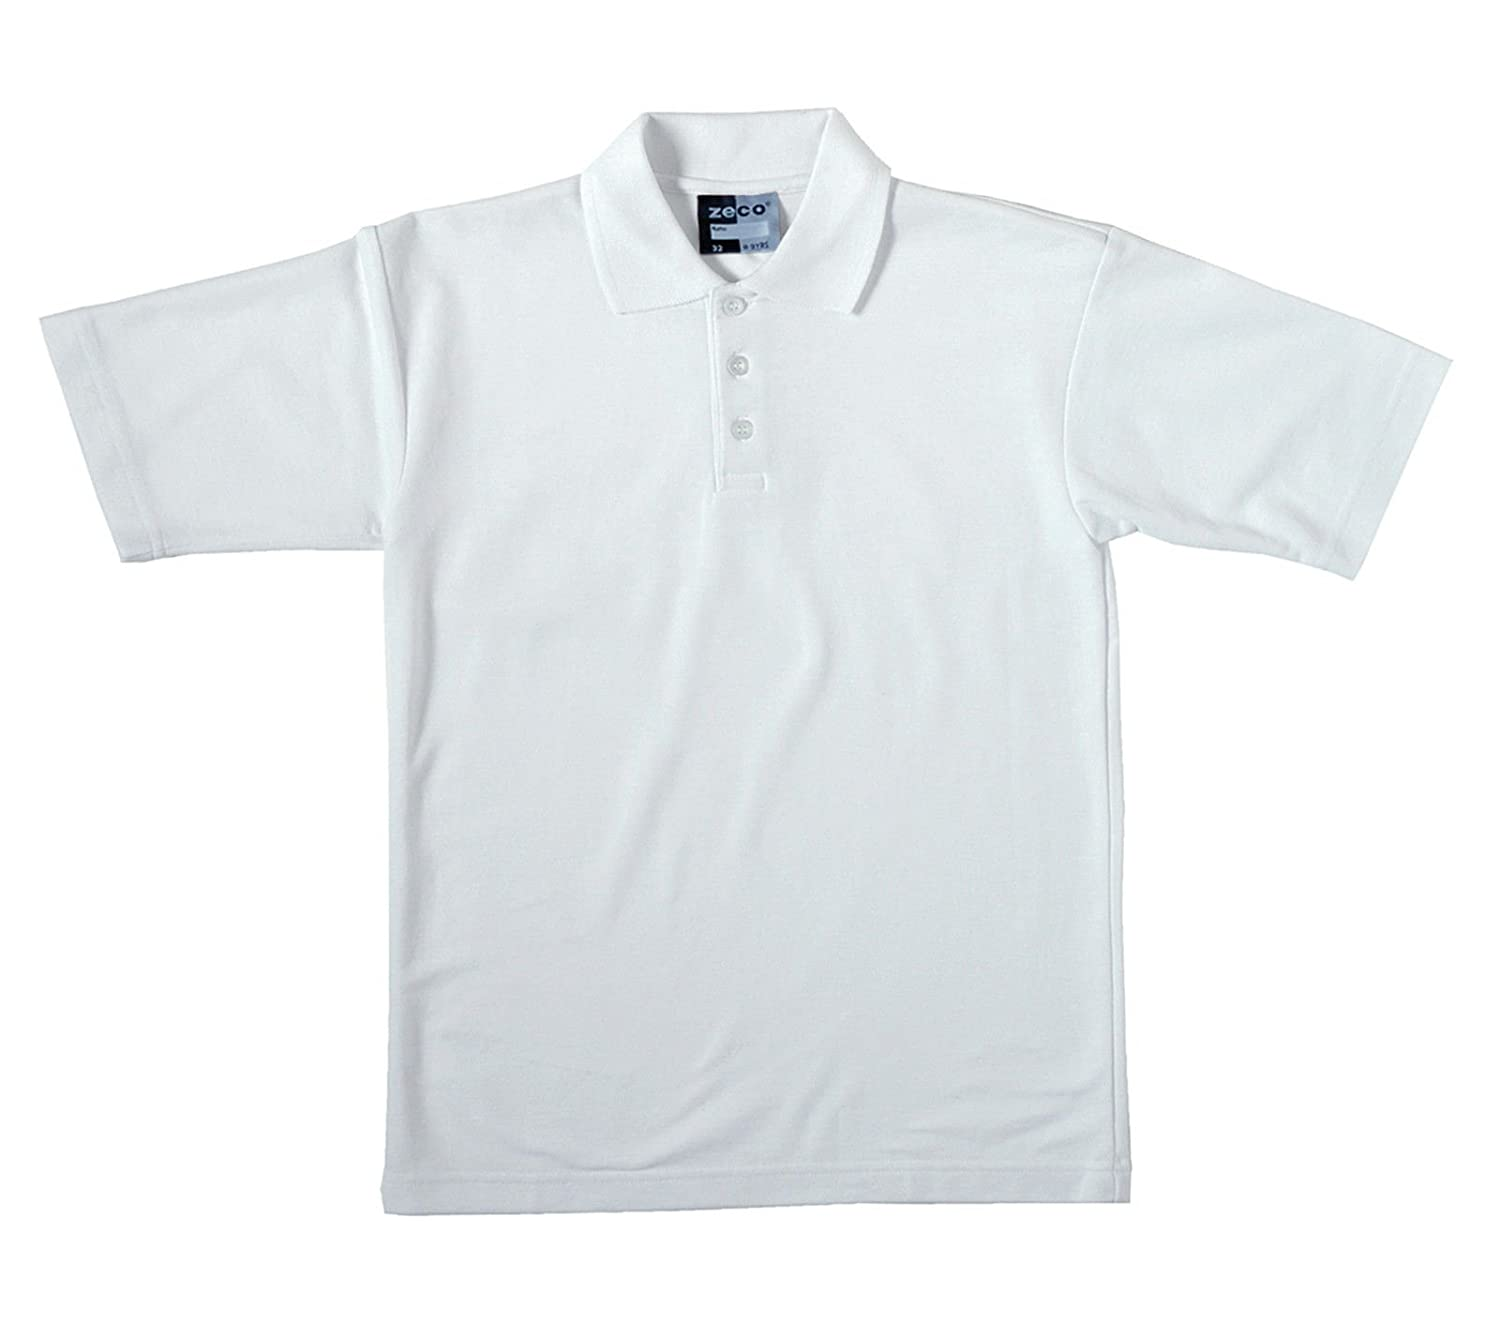 Zeco sold by Essential Wear 2 School Boys Quality White Short Sleeve Polo Shirt Age 2 3 4 5 6 7 8 9 10 11